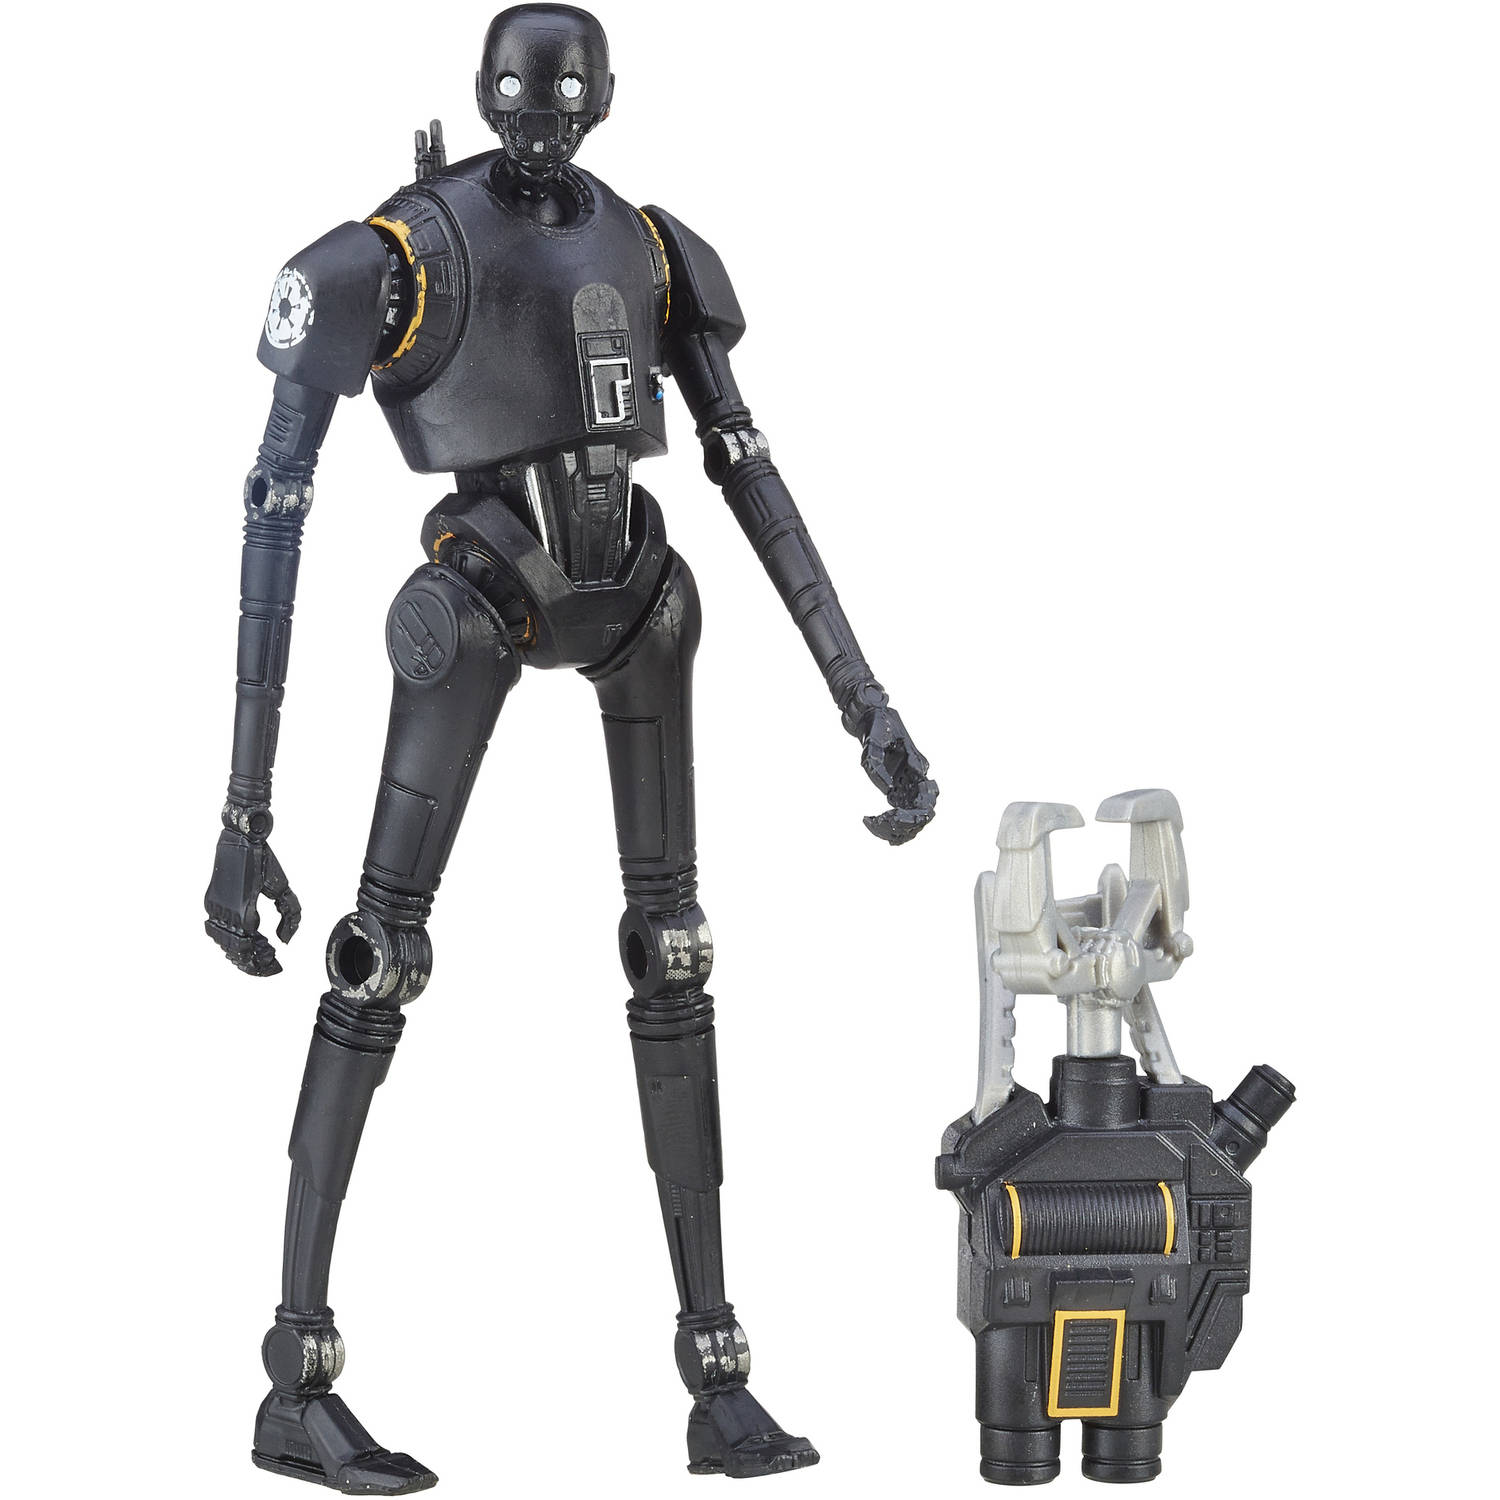 Star Wars Rogue One K-2SO Figure